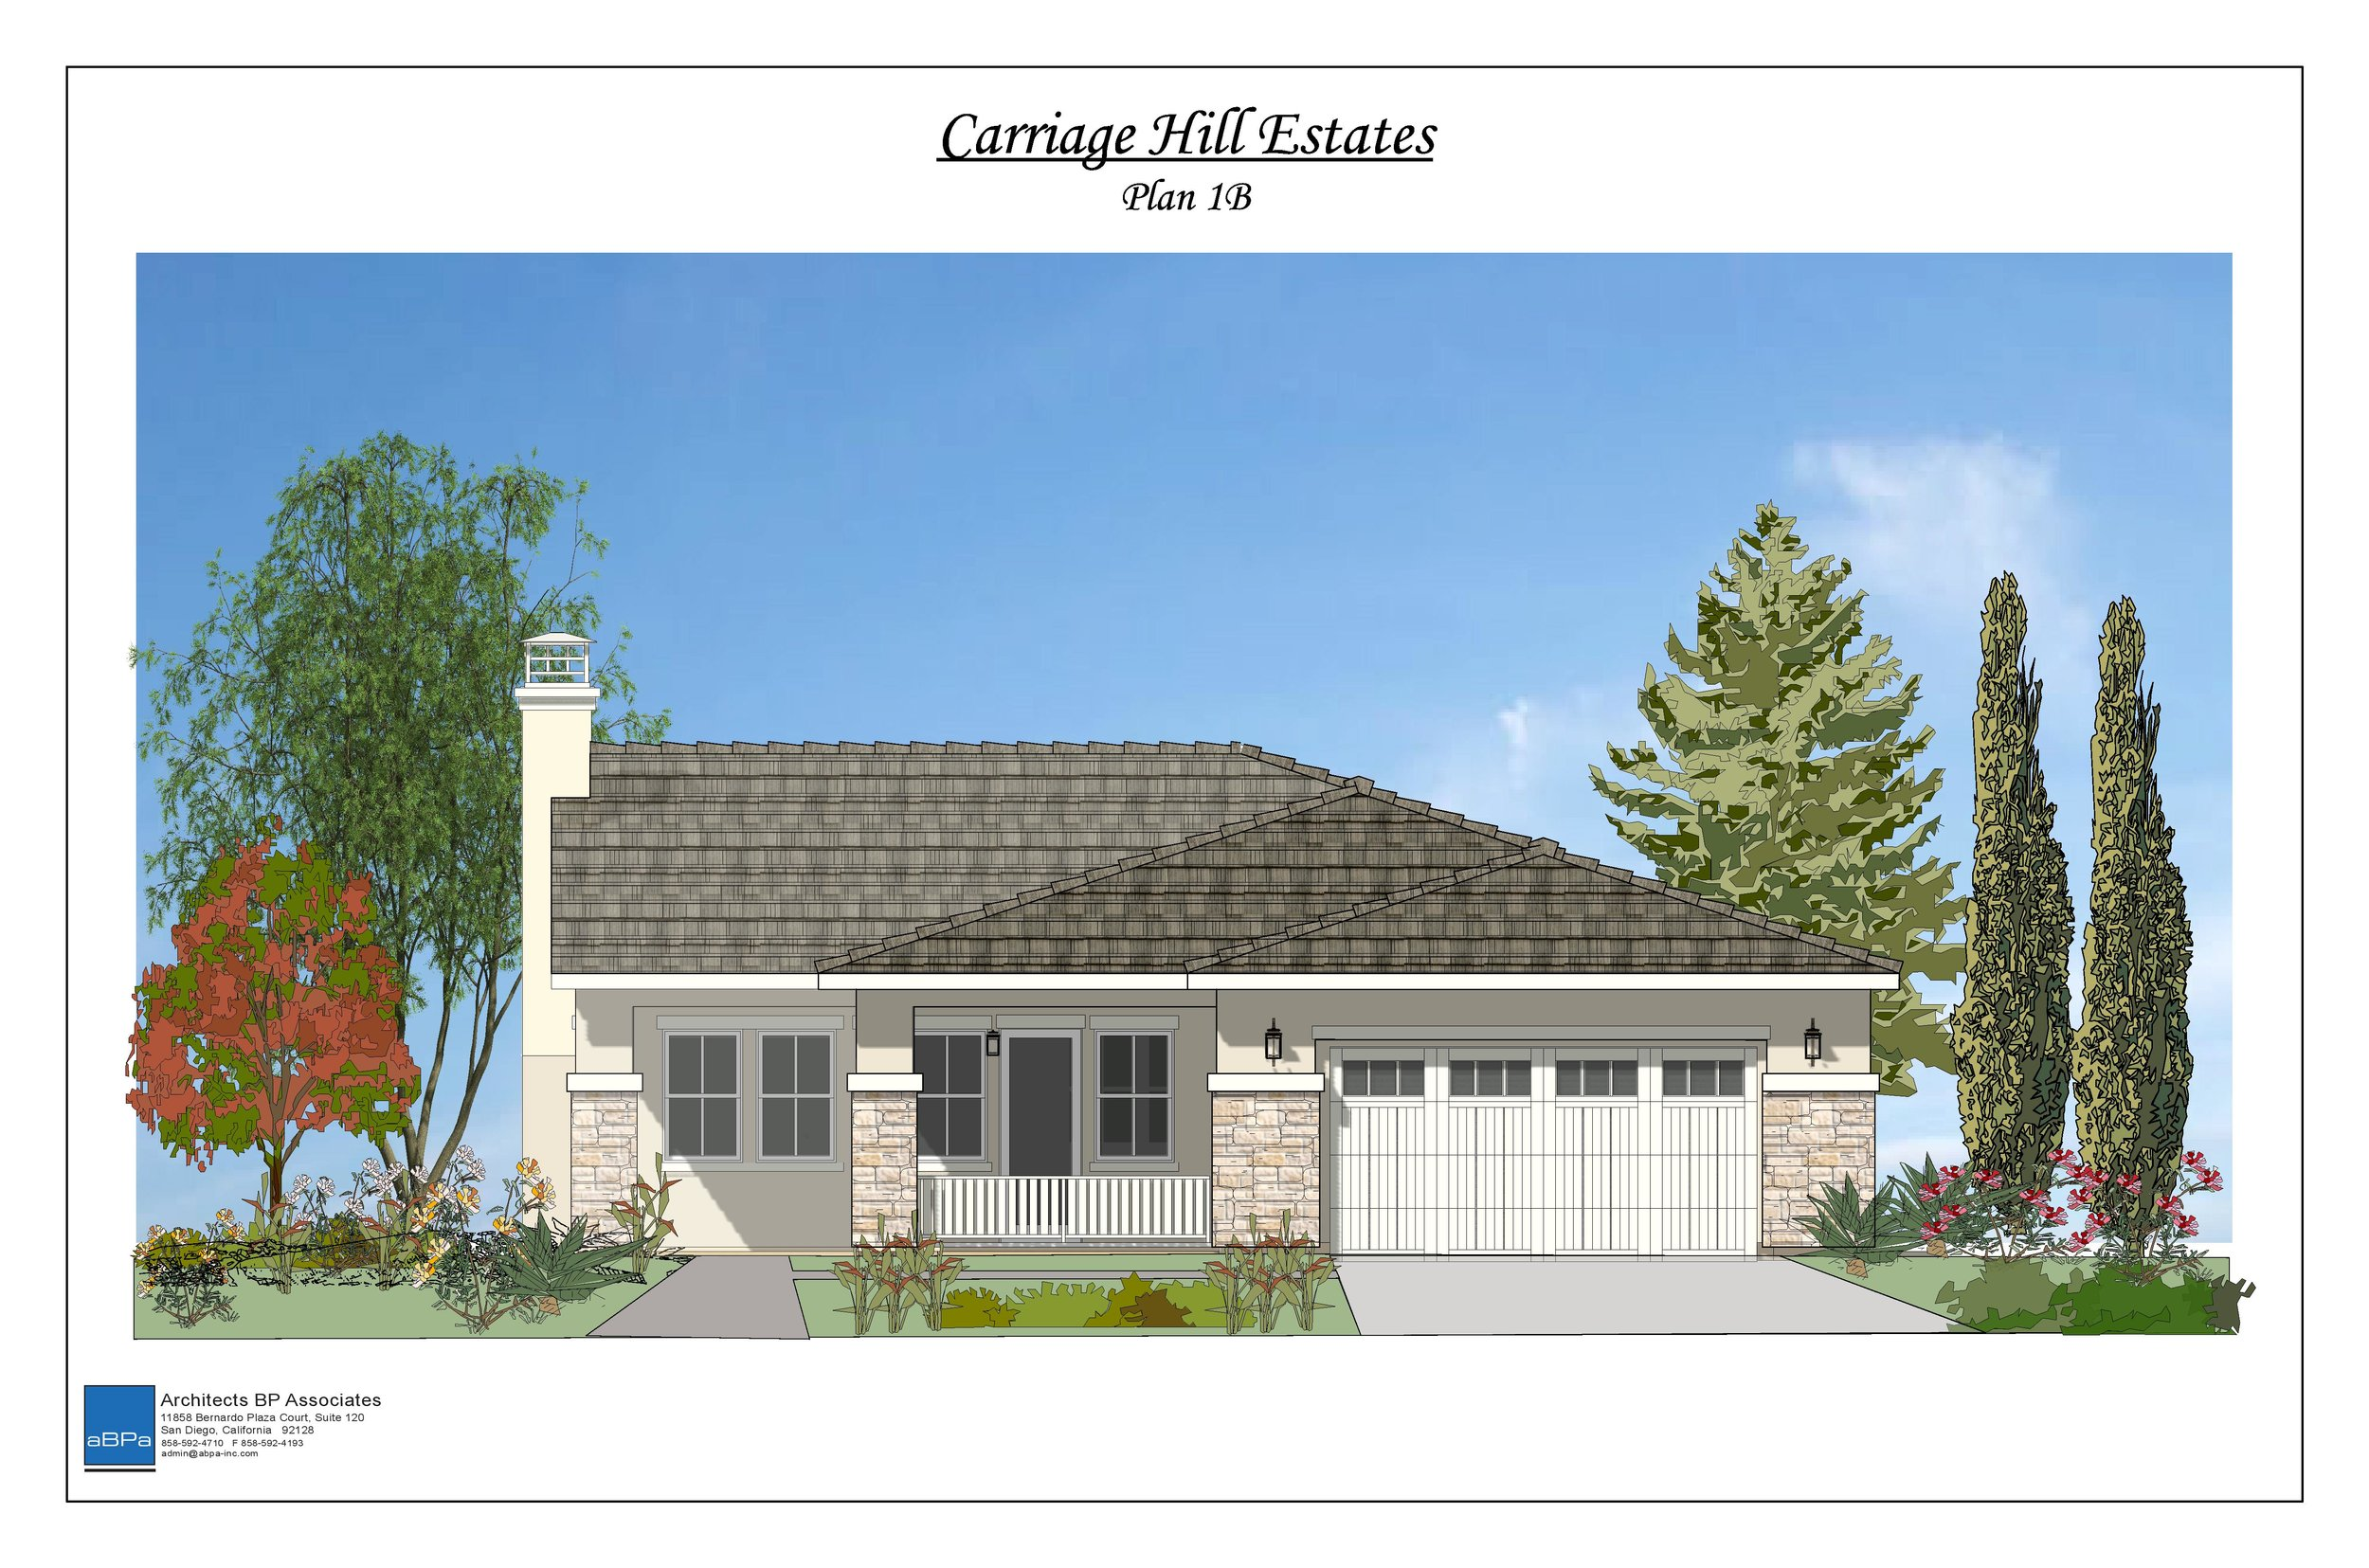 Carriage Hill - Plan 1 Color Elev(040219)-page-002.jpg